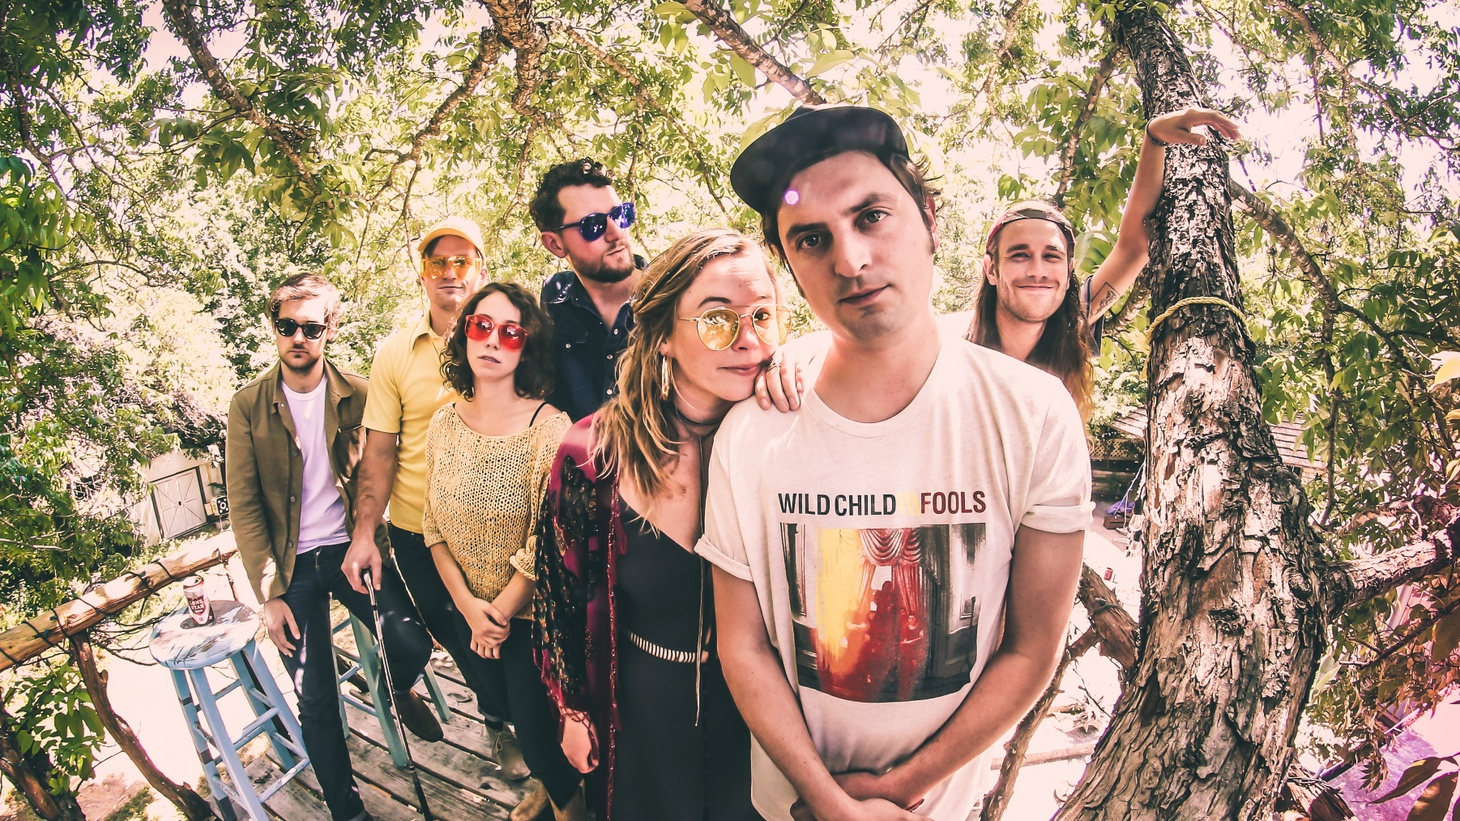 Wild Child, an Austin based band traveled far and wide to work with a bunch of producers and musicians, including former Death Cab for Cutie alumni Chris Walla.